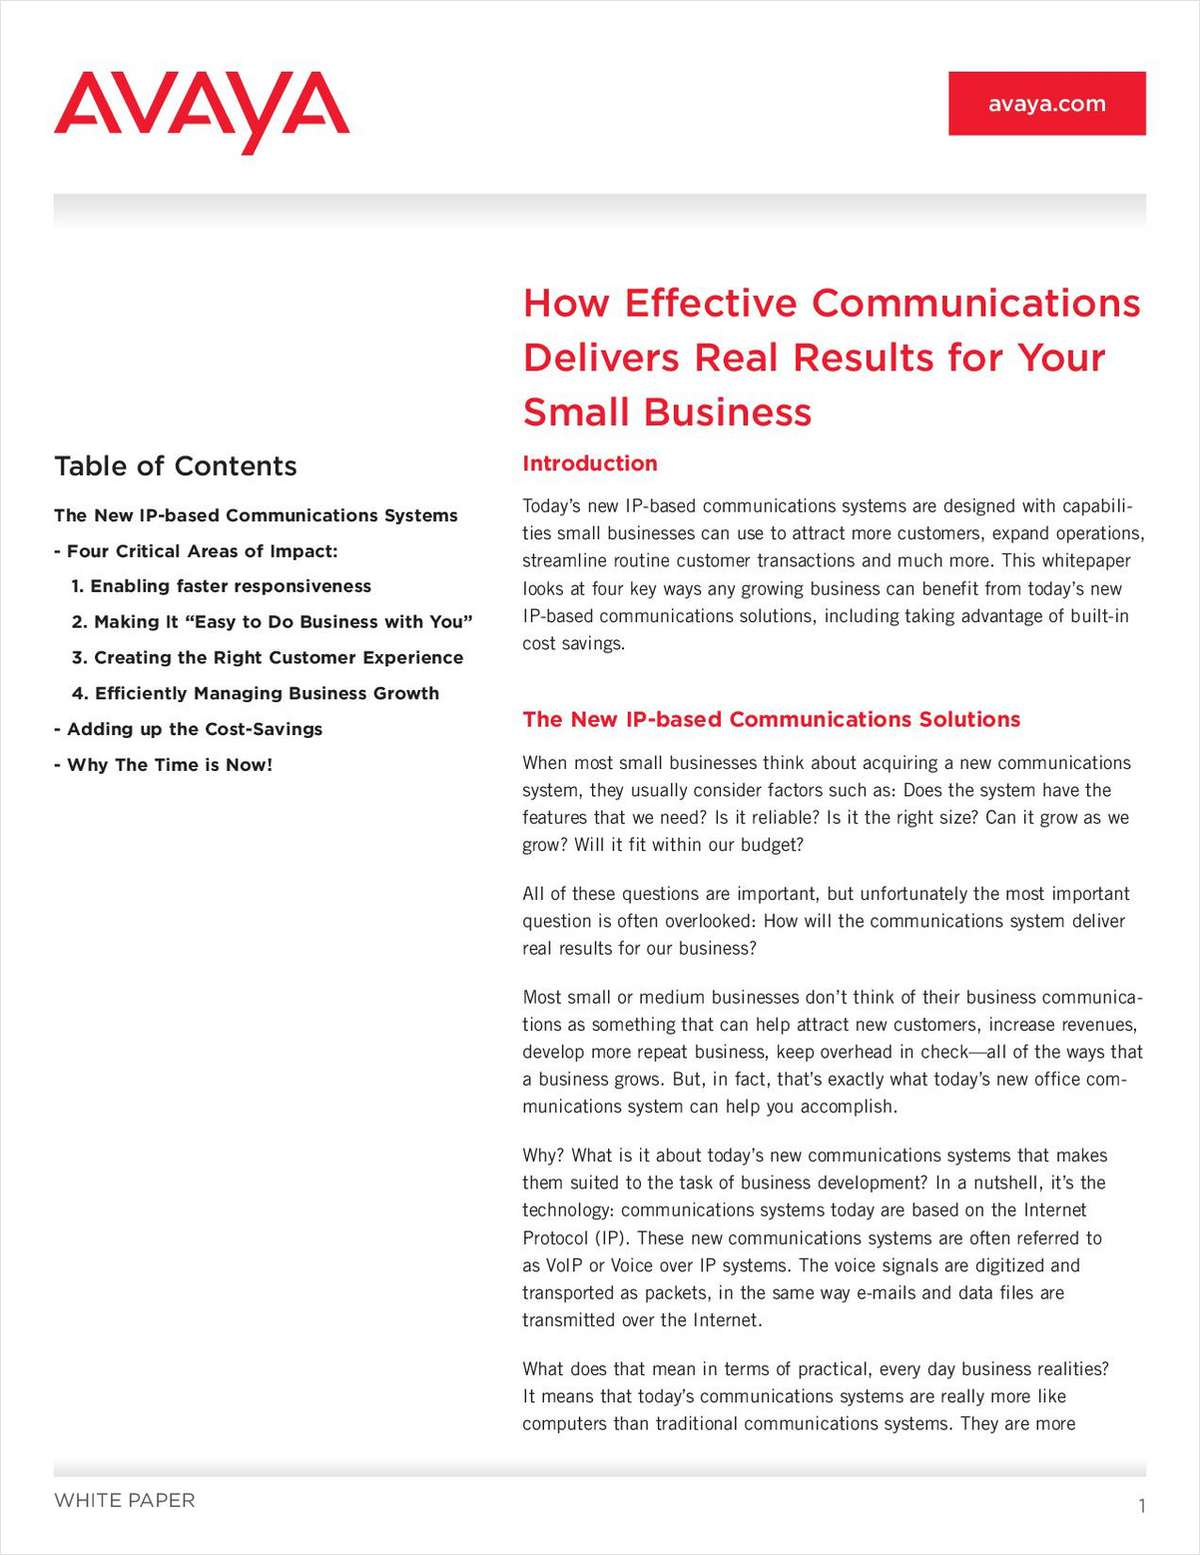 How Effective Communications Deliver Real Results to Your Small Business